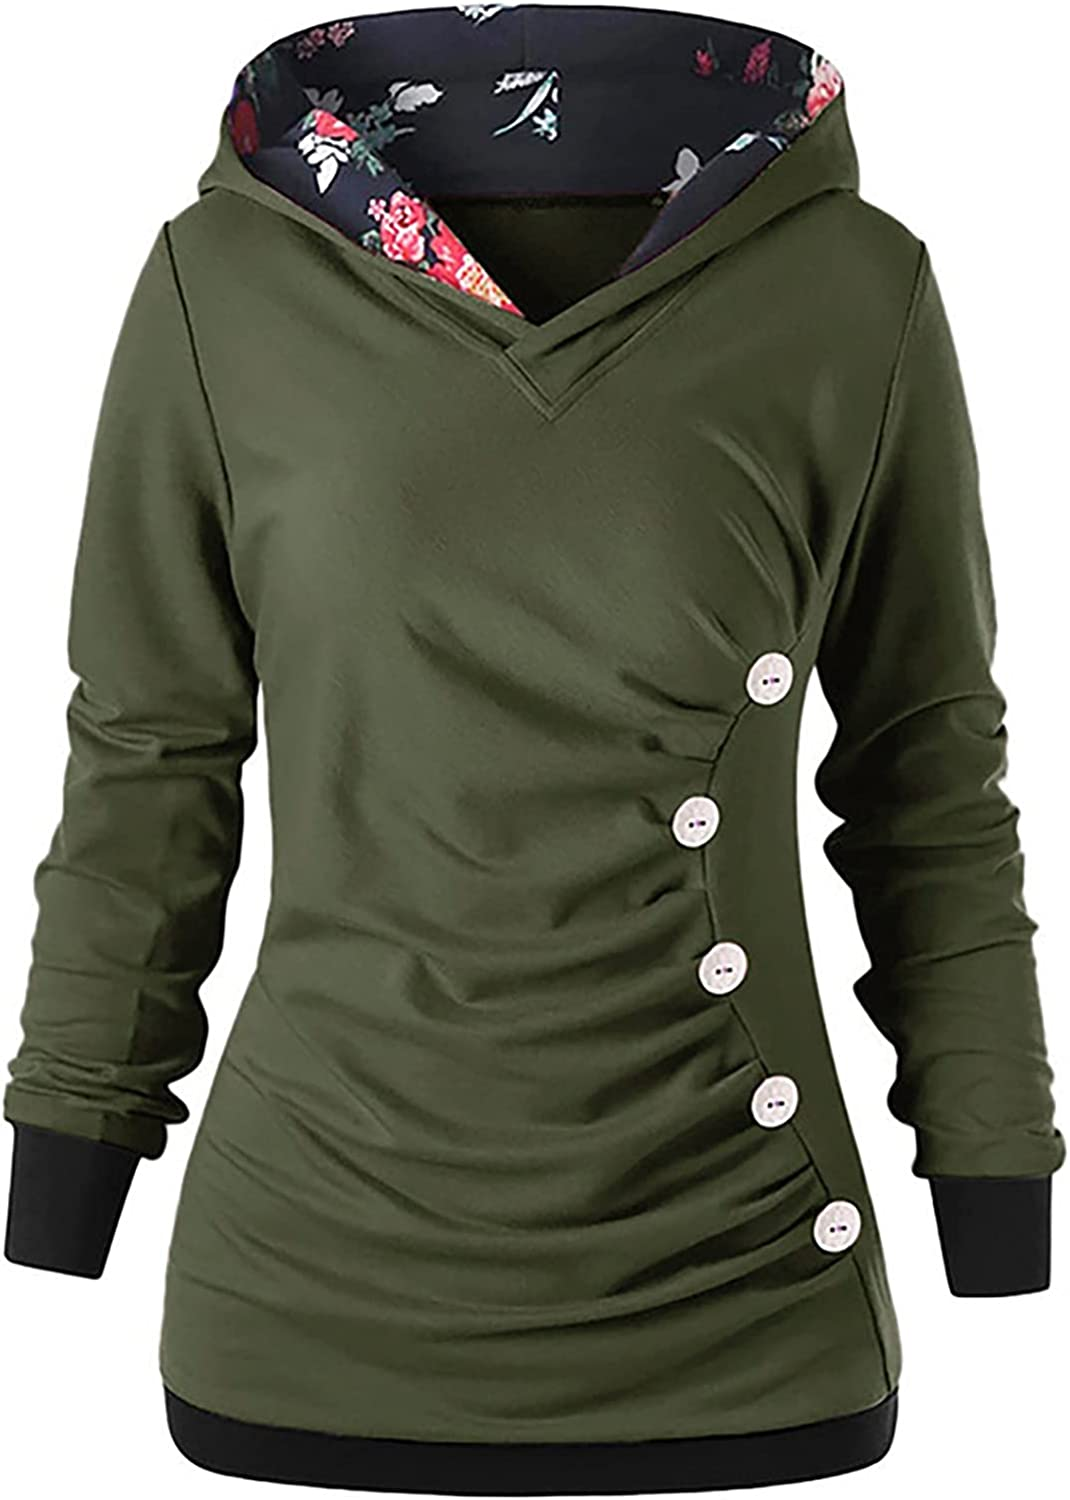 LEXUPA Cardigans Sweaters Pullovers Translated Casual Recommended So Hoodies,Women